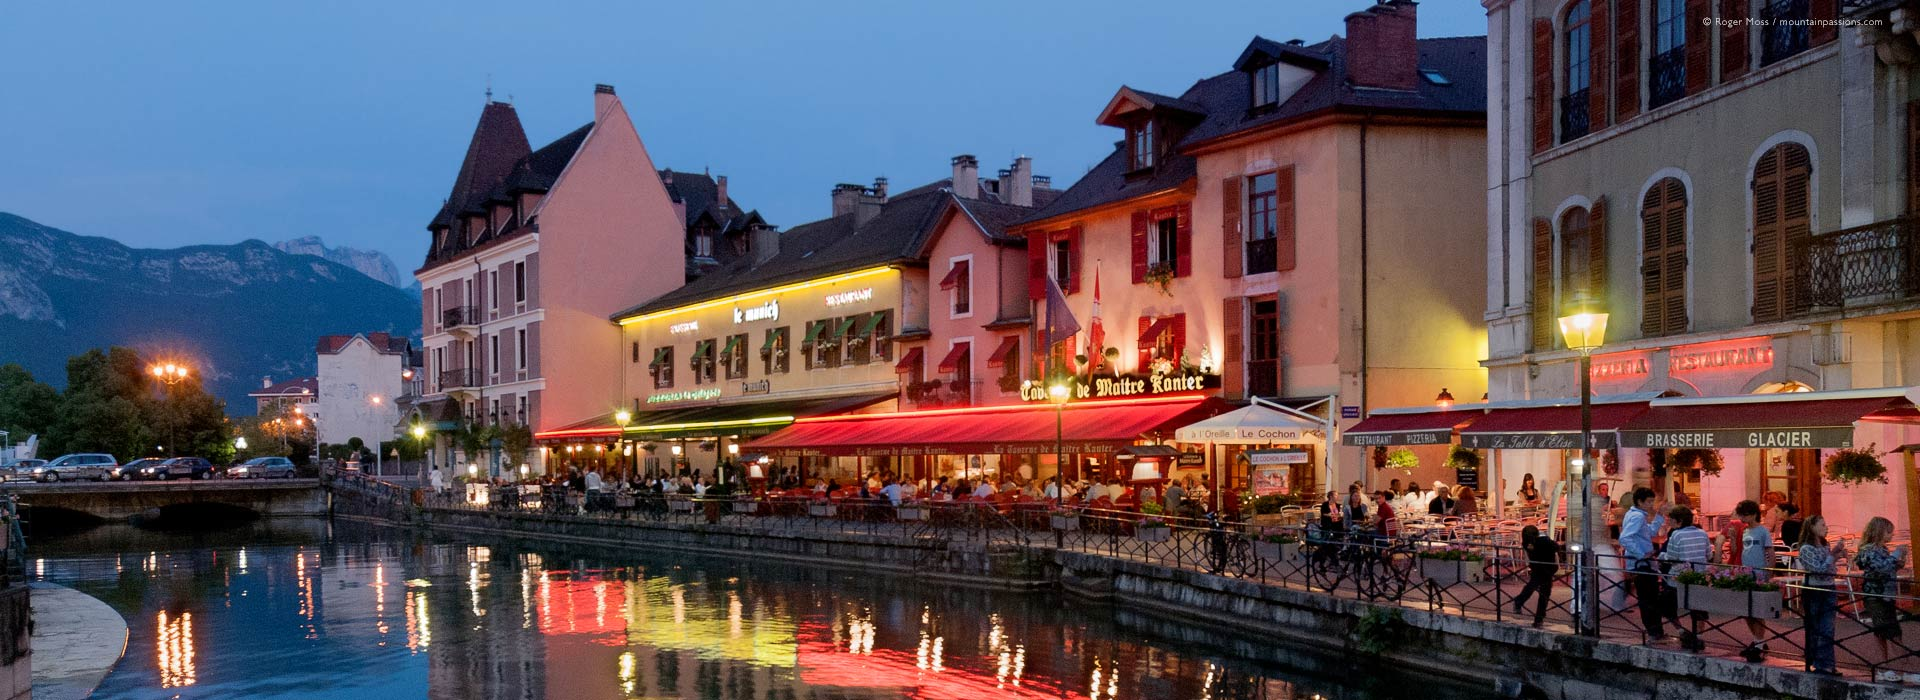 Wide view of quayside restaurants at dusk